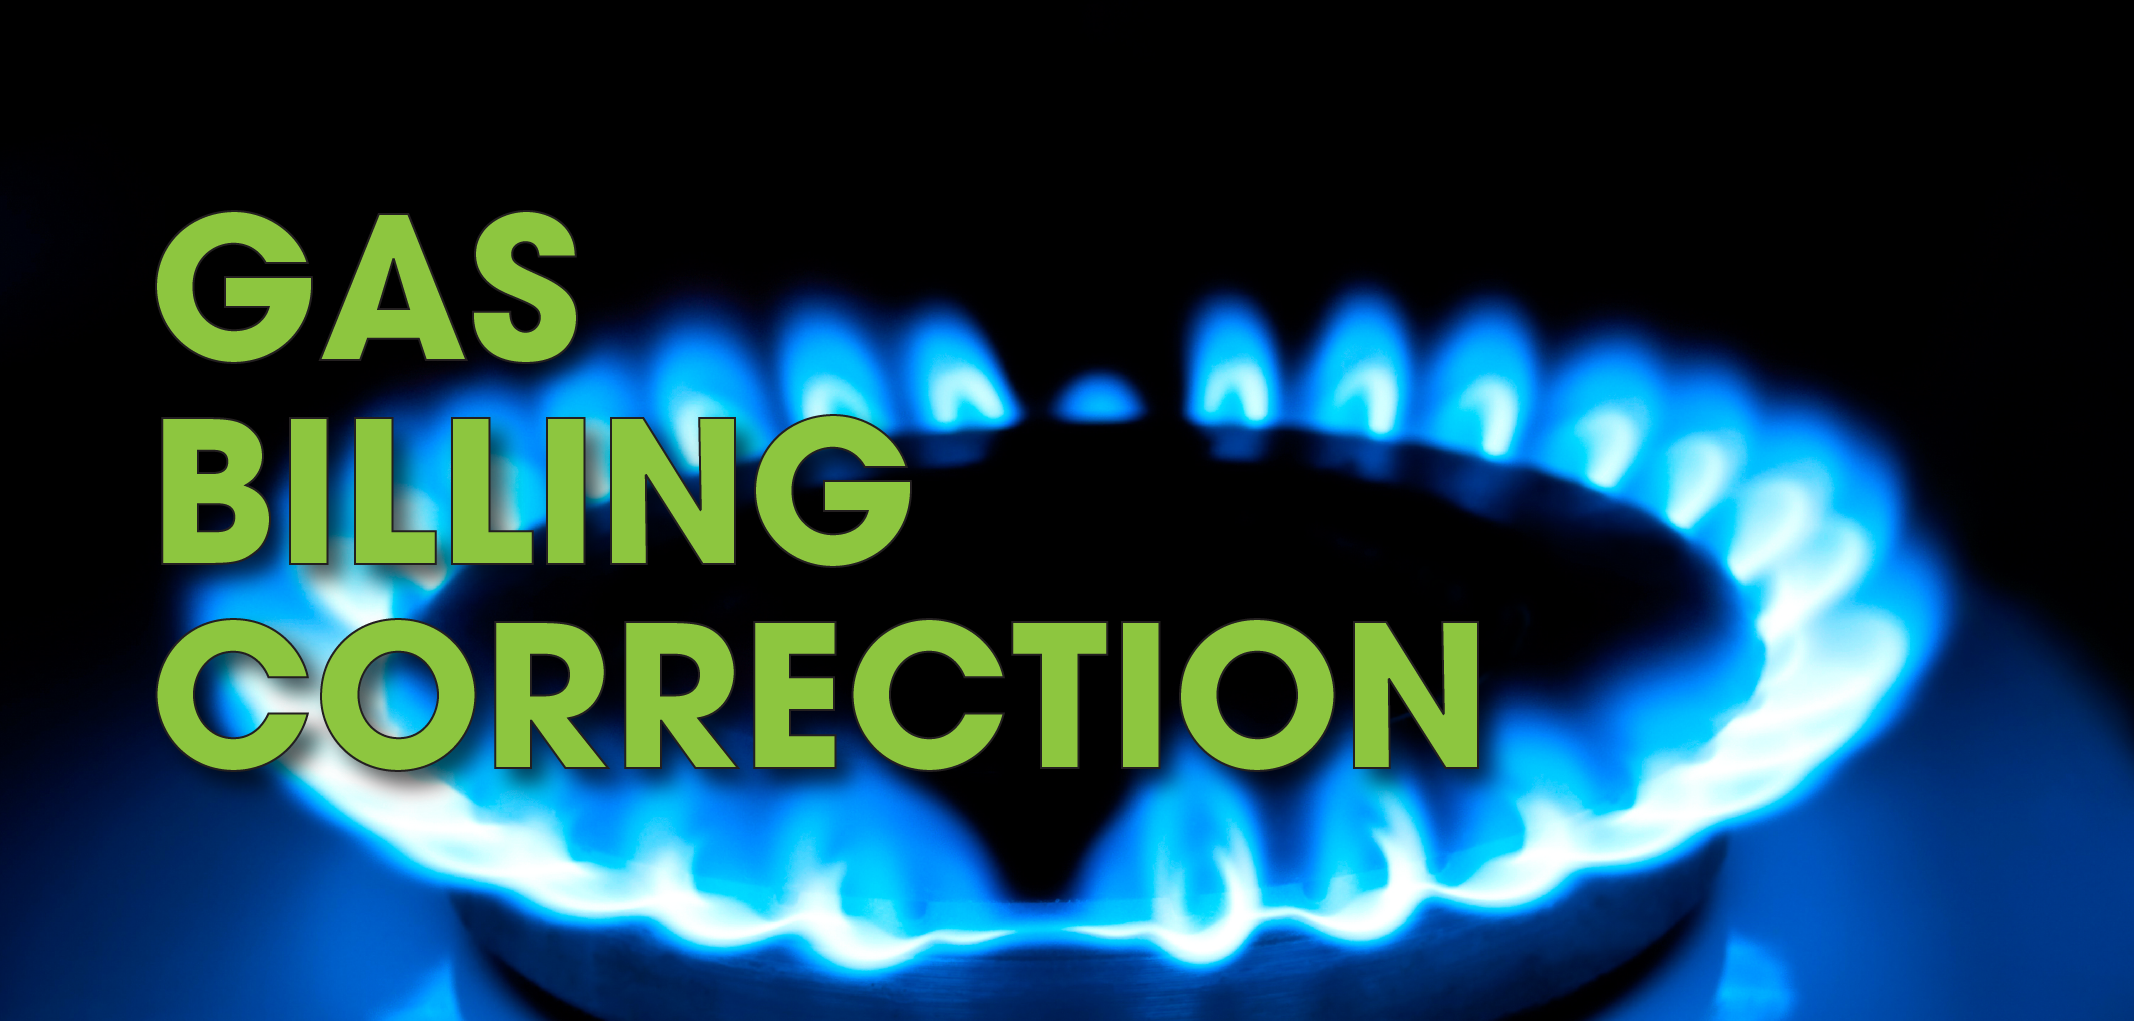 Gas Billing Correction